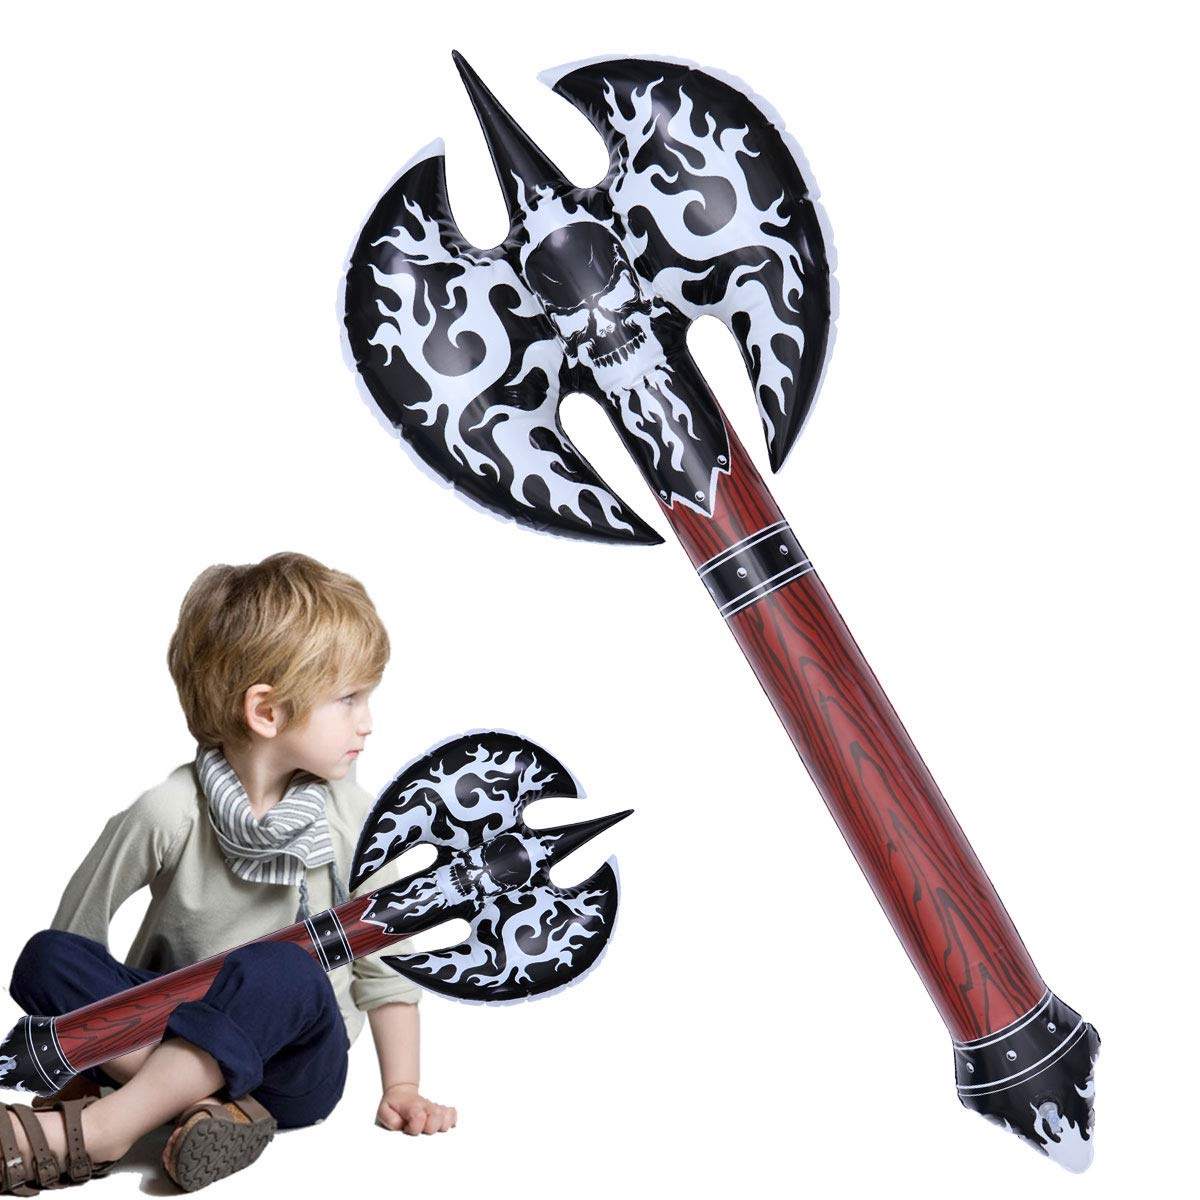 LUOEM Juguete Inflable Hacha Blow Up Air Filled Weapon Novedad ...